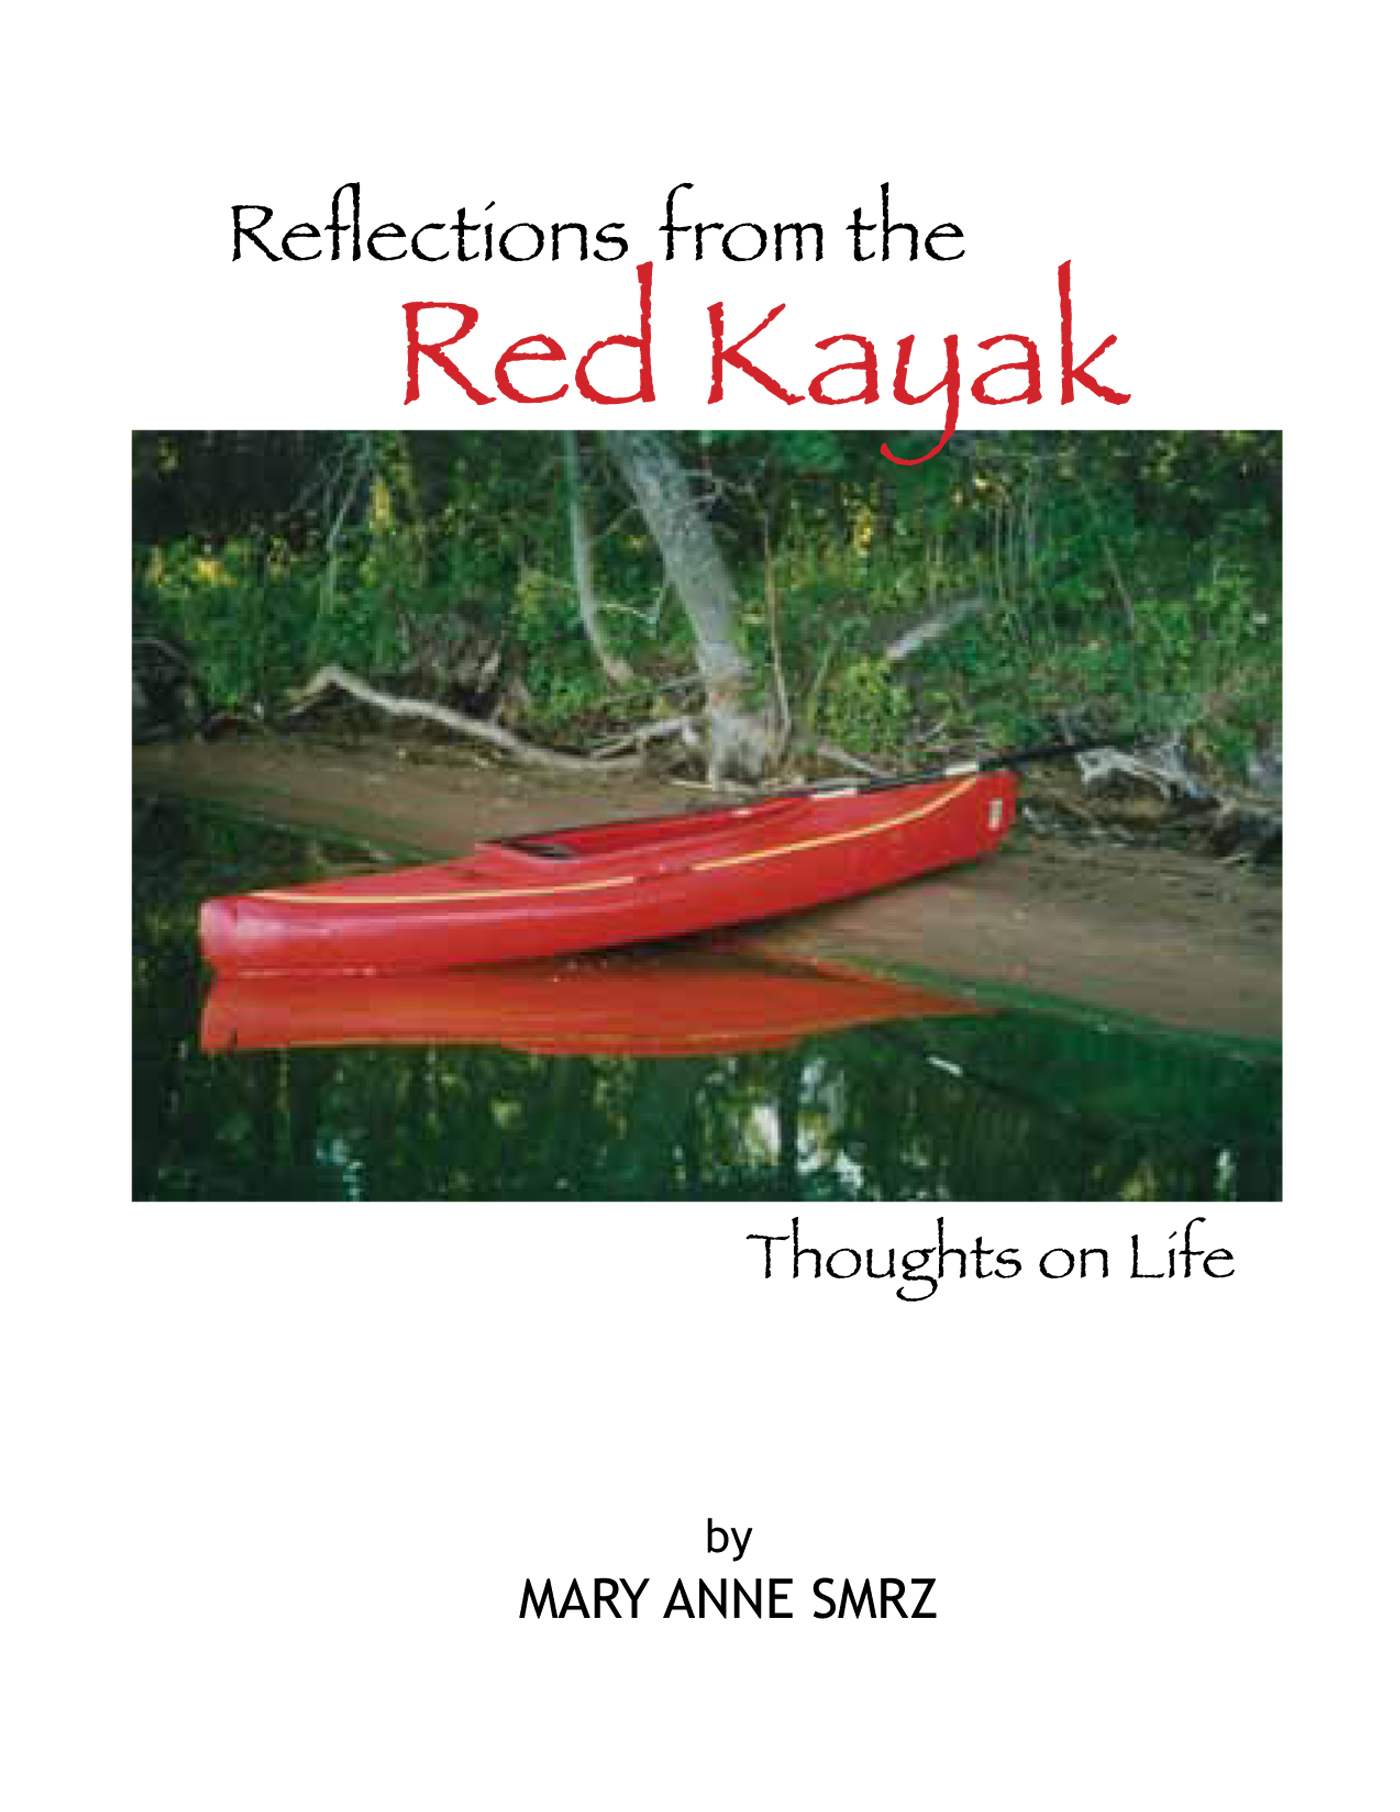 Reflections from the Red Kayak, Thoughts on Life By: Mary Anne Smrz